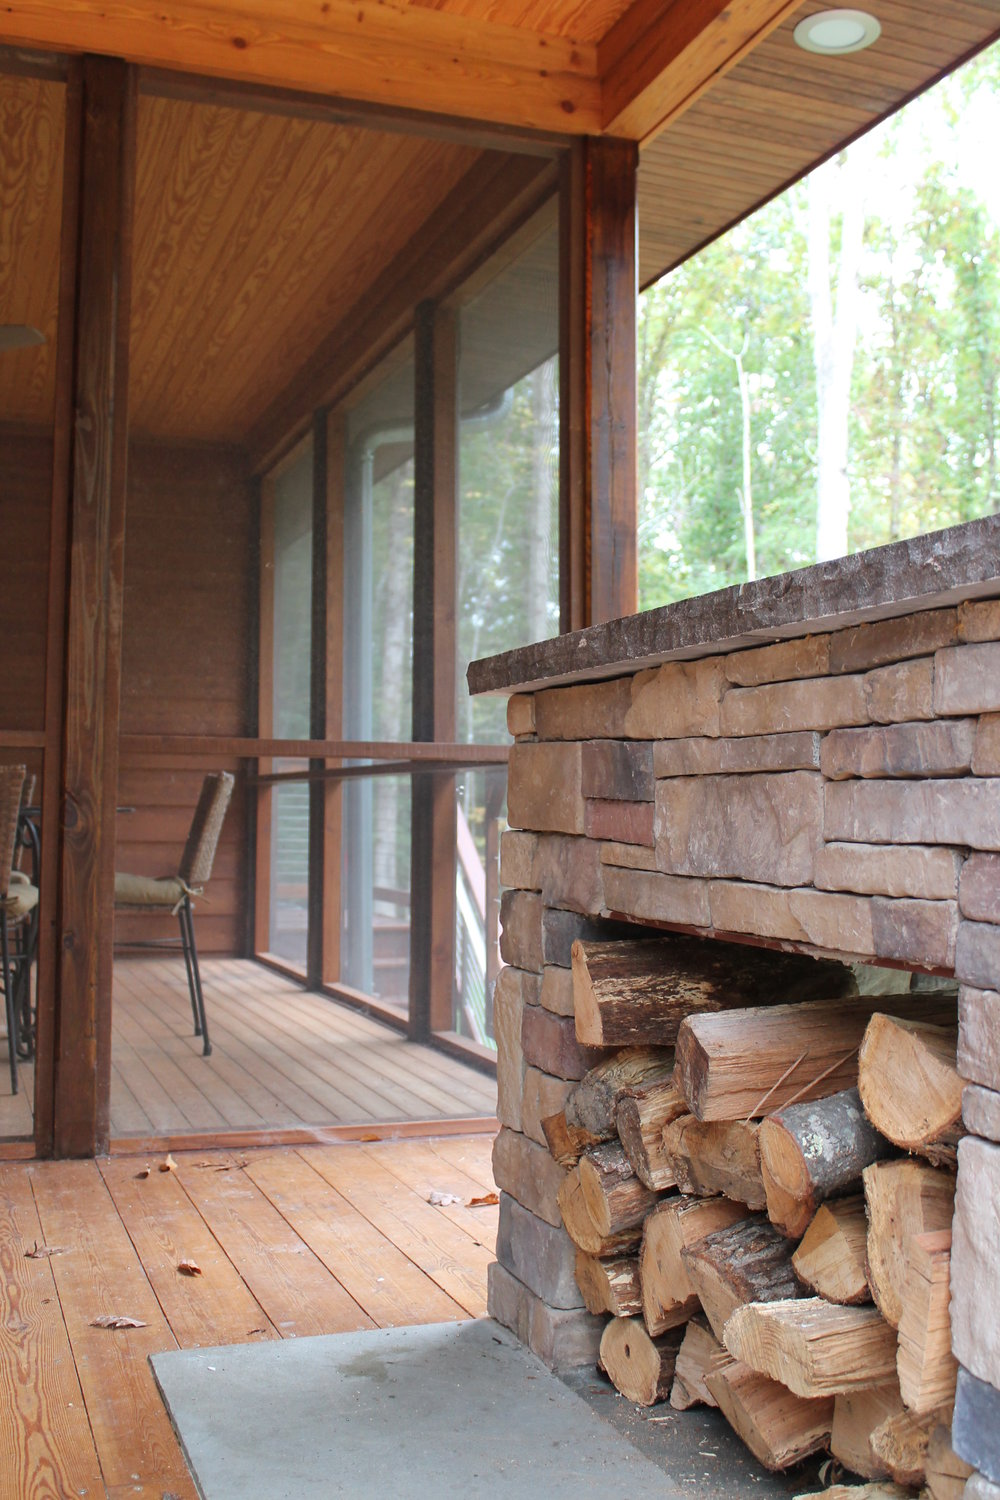 Wood storage on the porch.